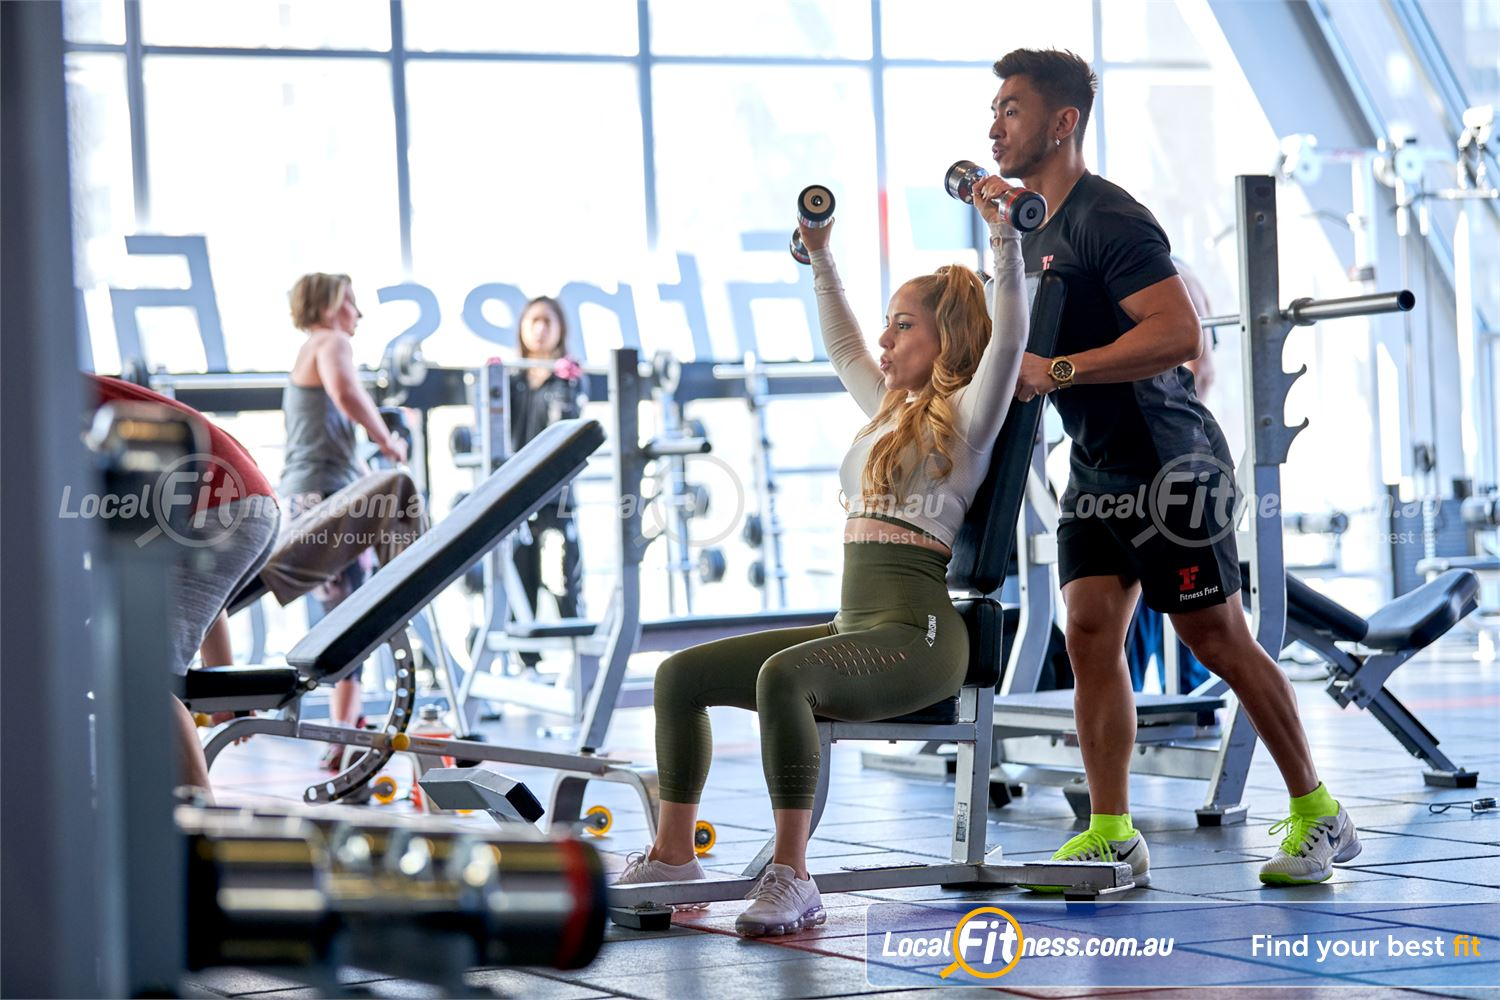 Fitness First Erina Fair Near Picketts Valley Erina Fair personal trainers can help design a women's strength training program for you.